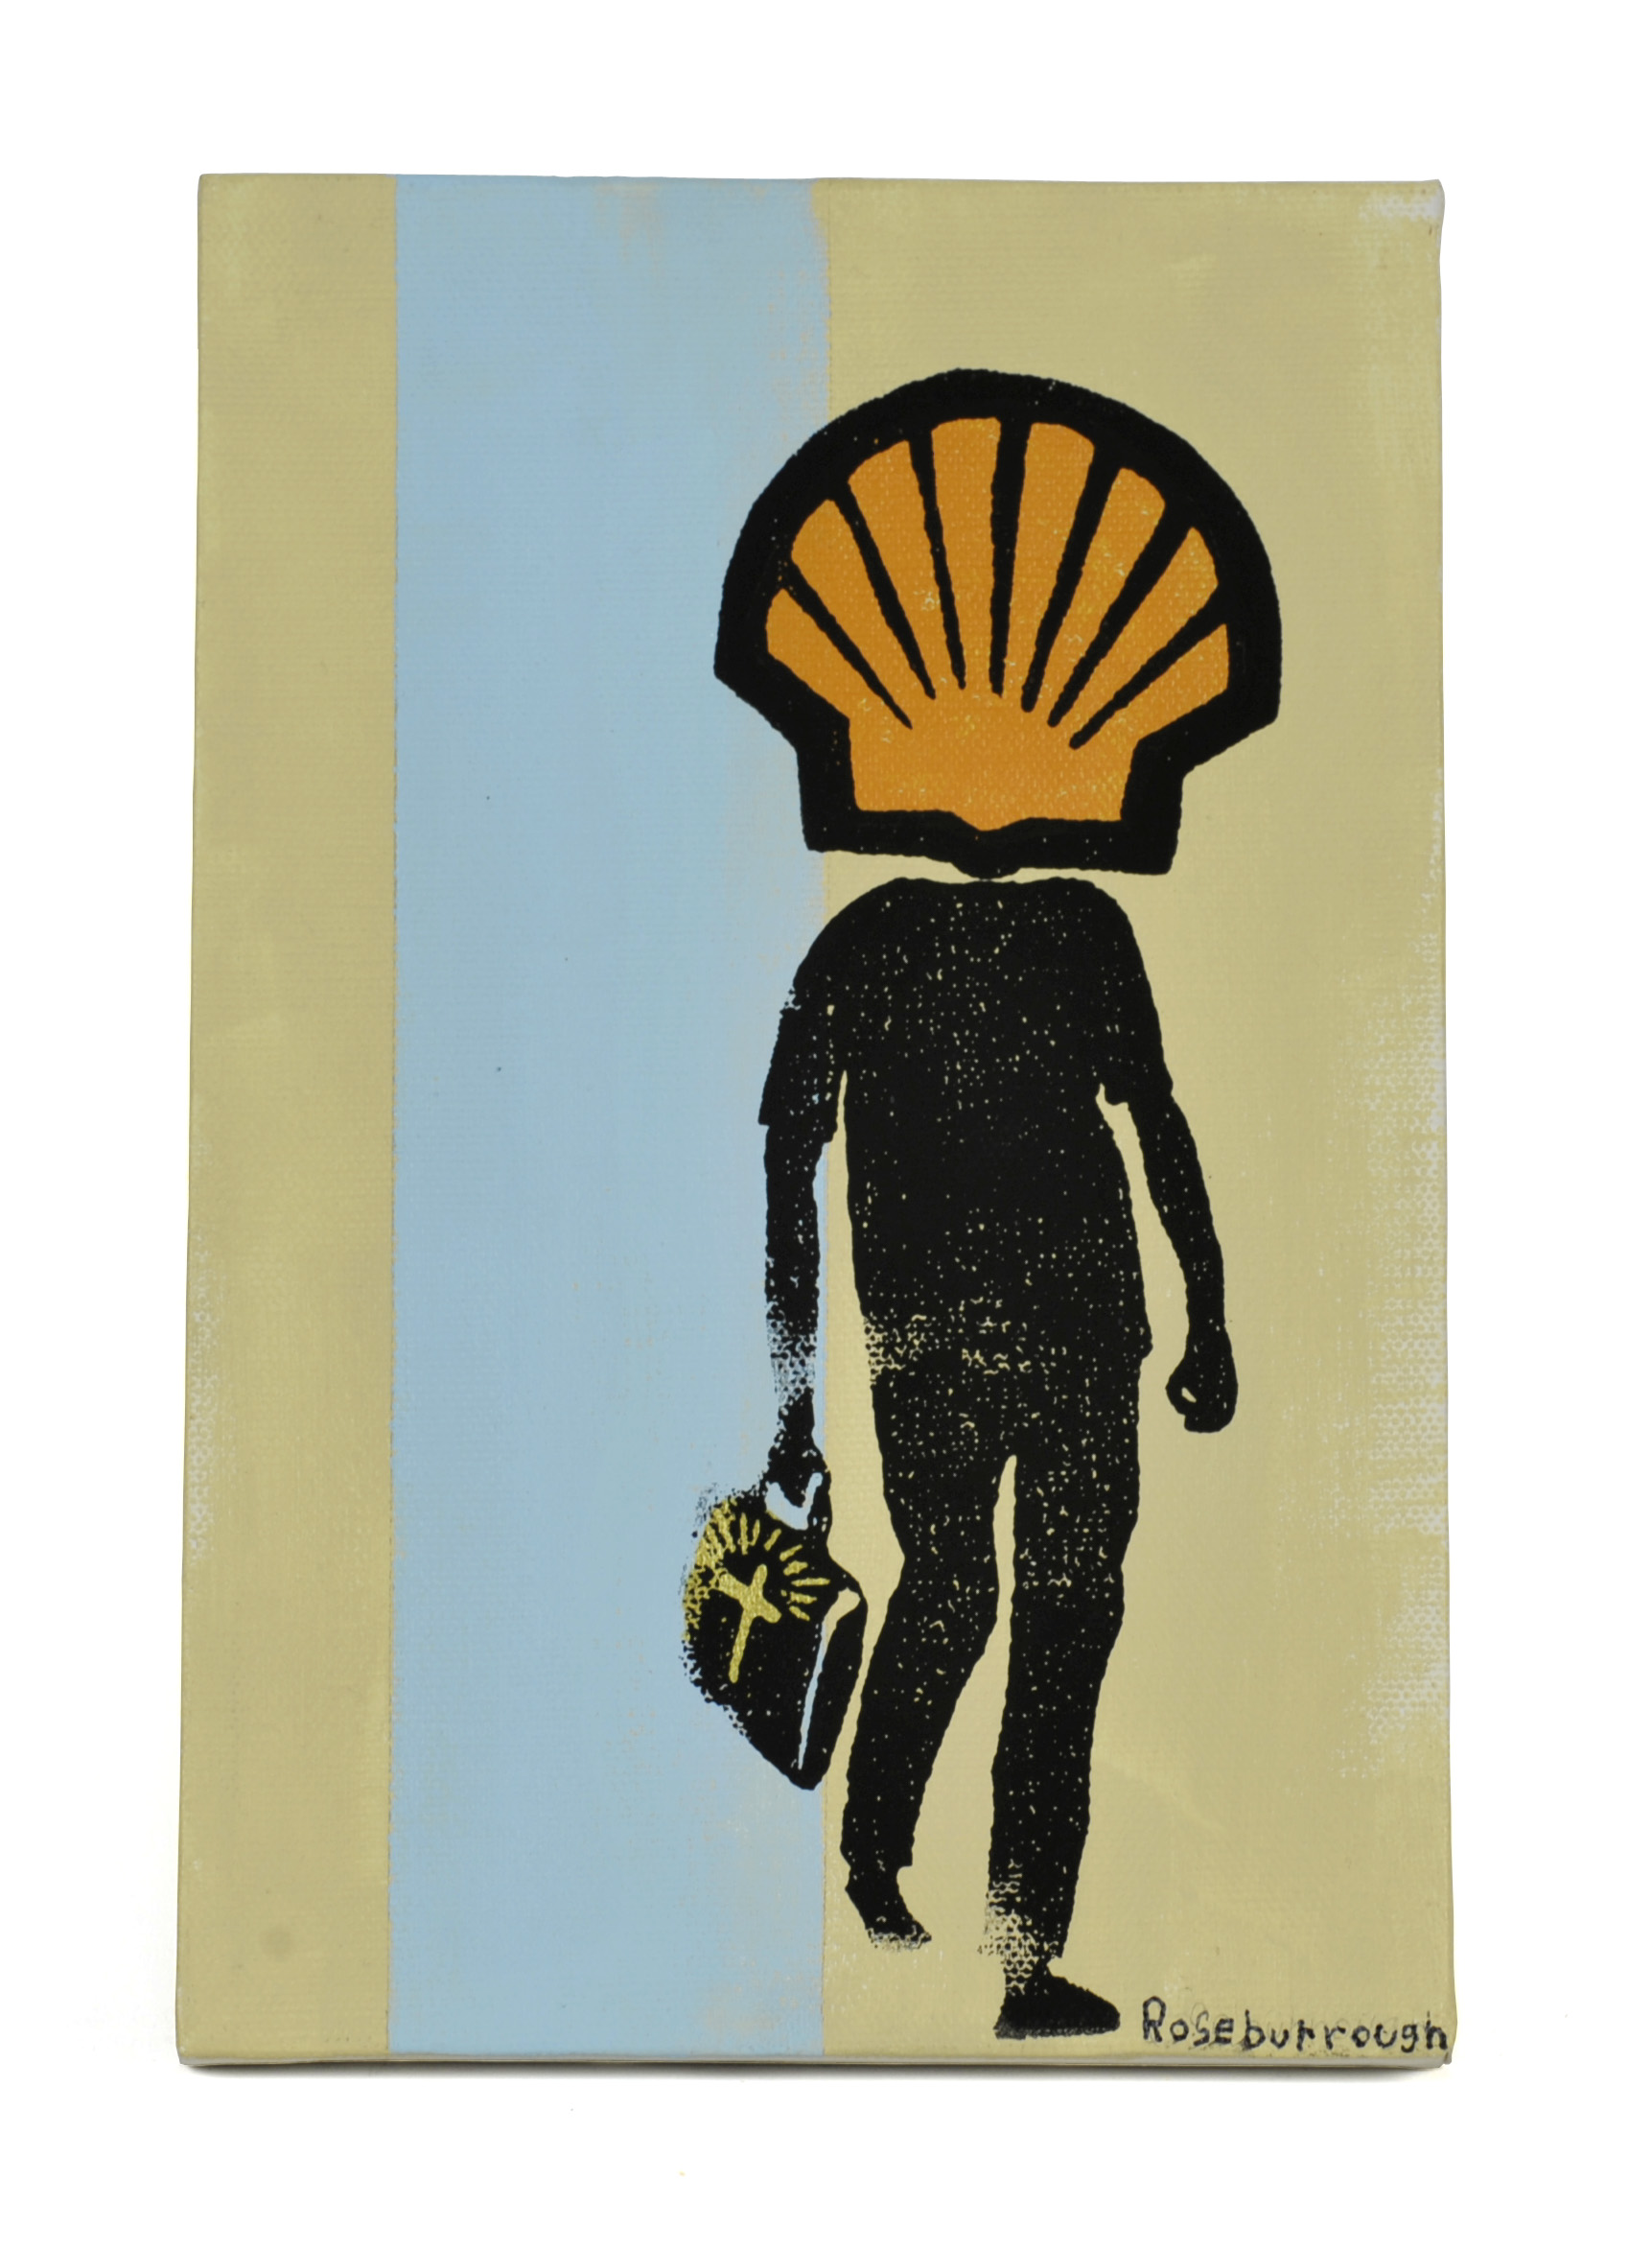 Scot Roseburrough     Petro Missionary,  2012  Acrylic and screen print